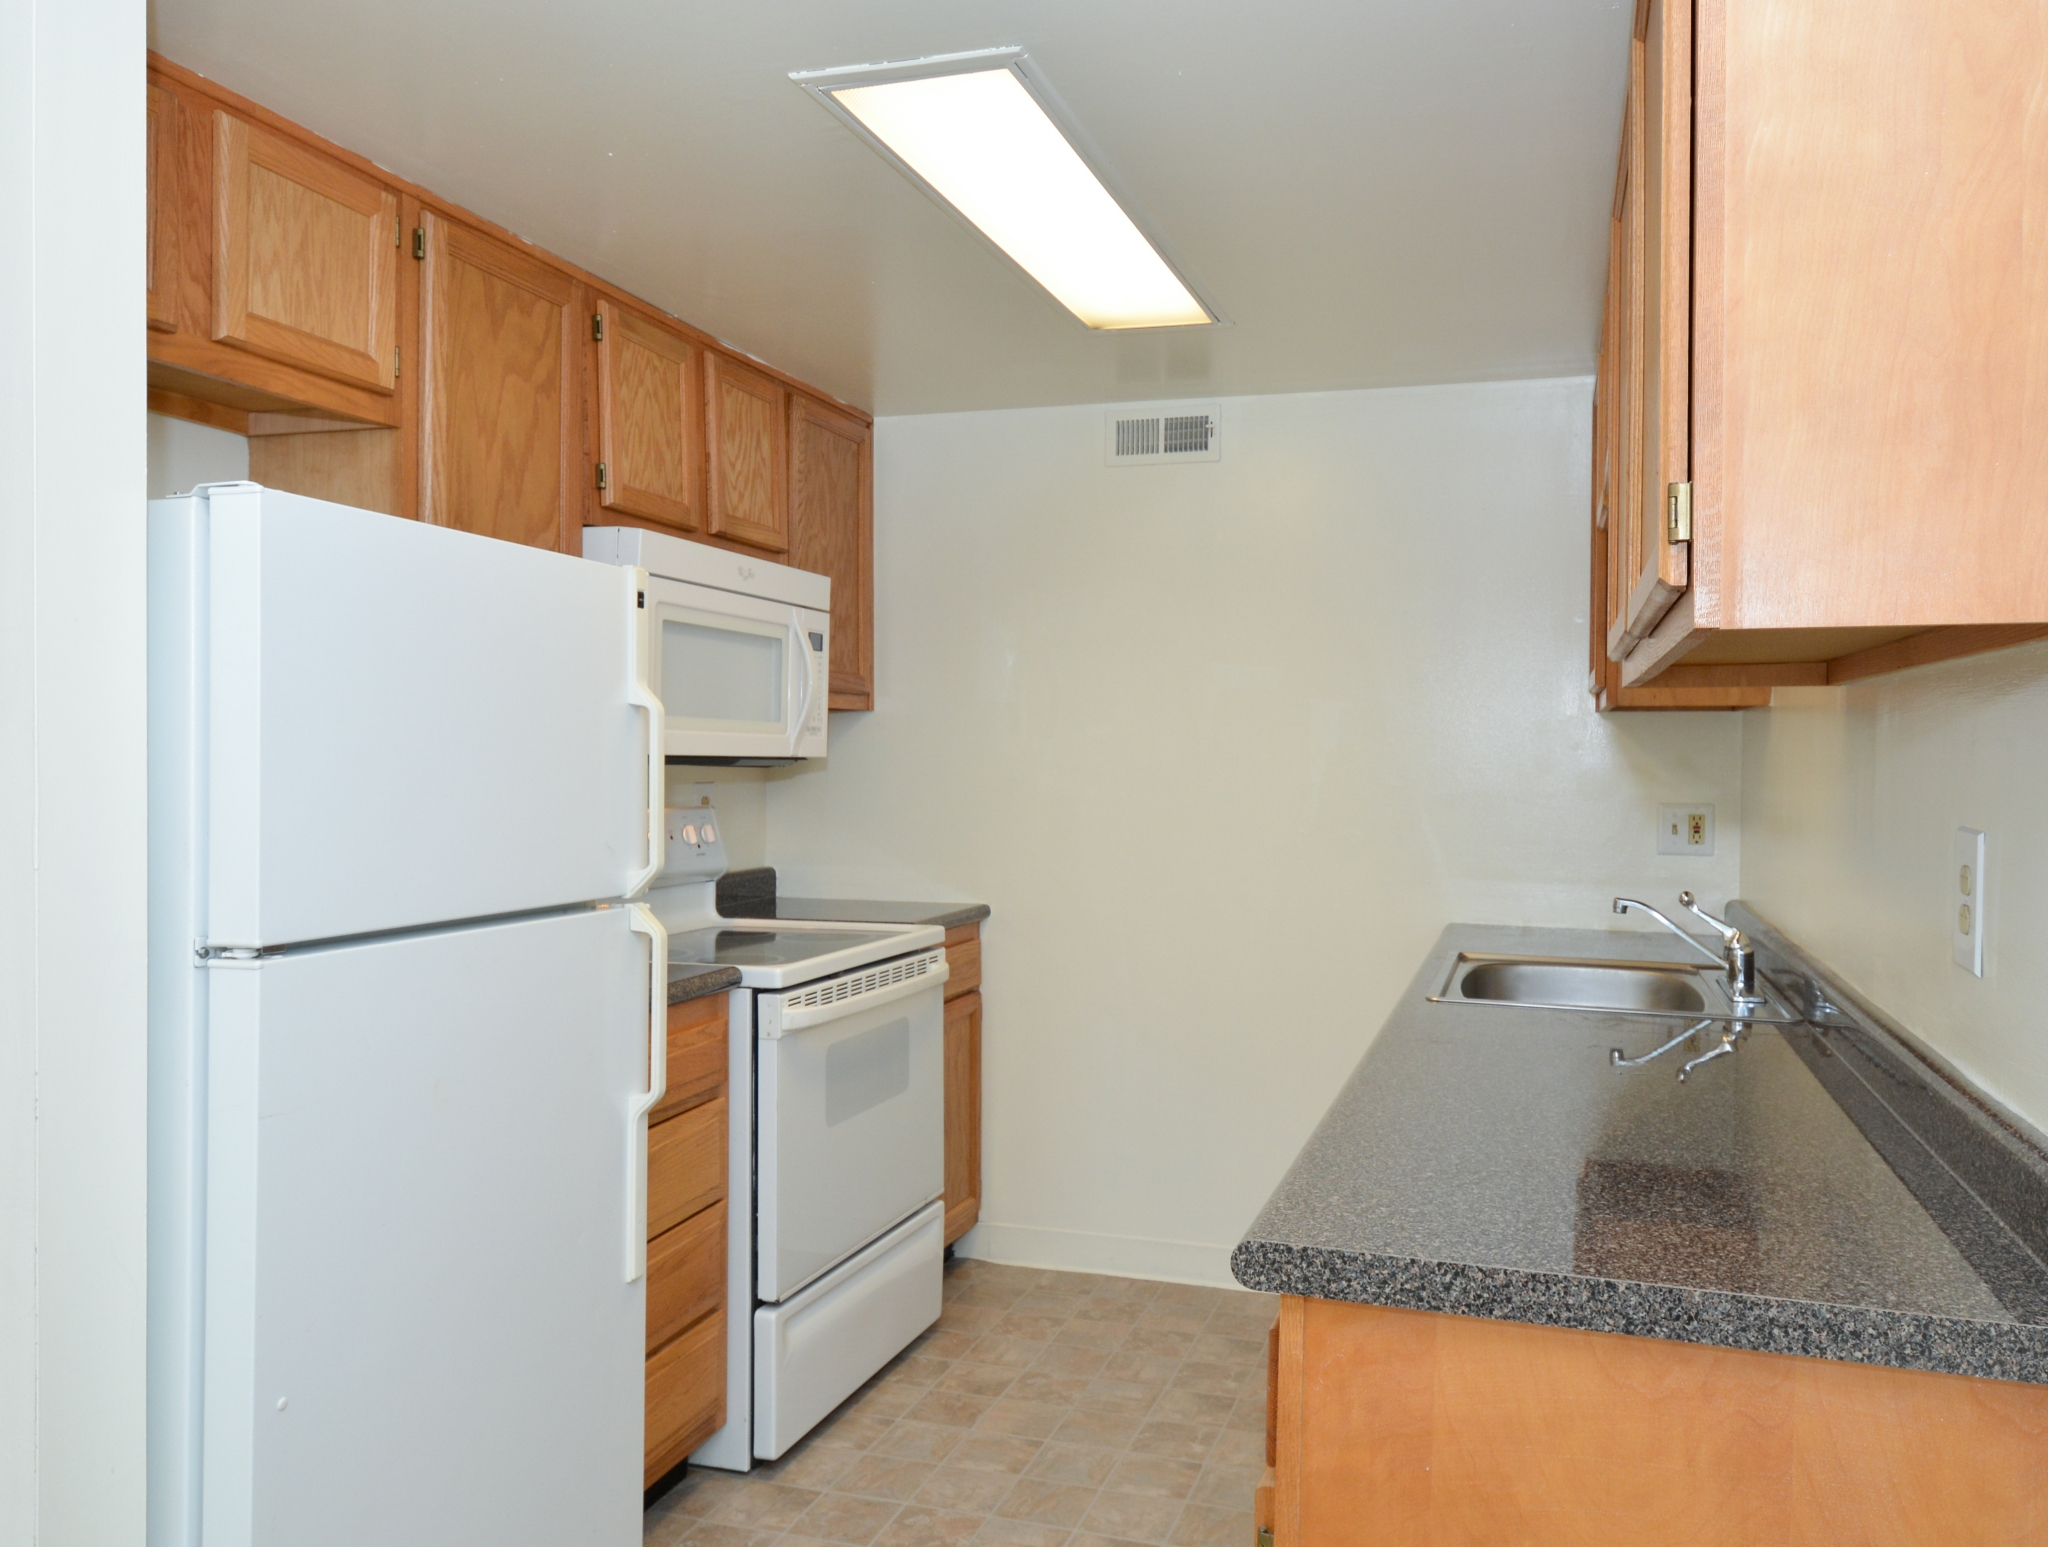 Princeton Orchards Sample Kitchen with Wood Cabinets | Apartments for Rent in South Brunswick, NJ